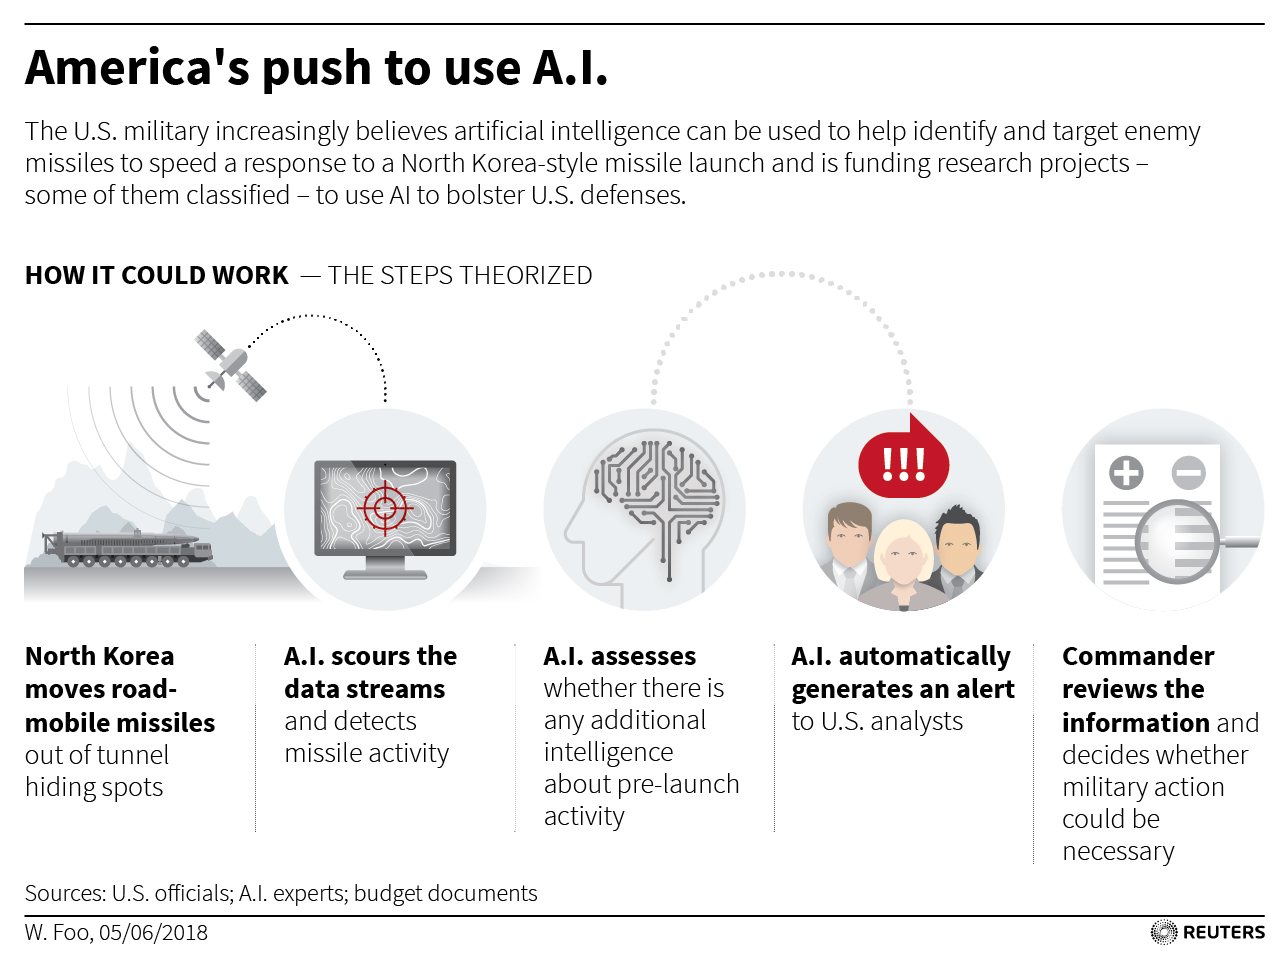 Google says it's AI software can't appear in weapons,